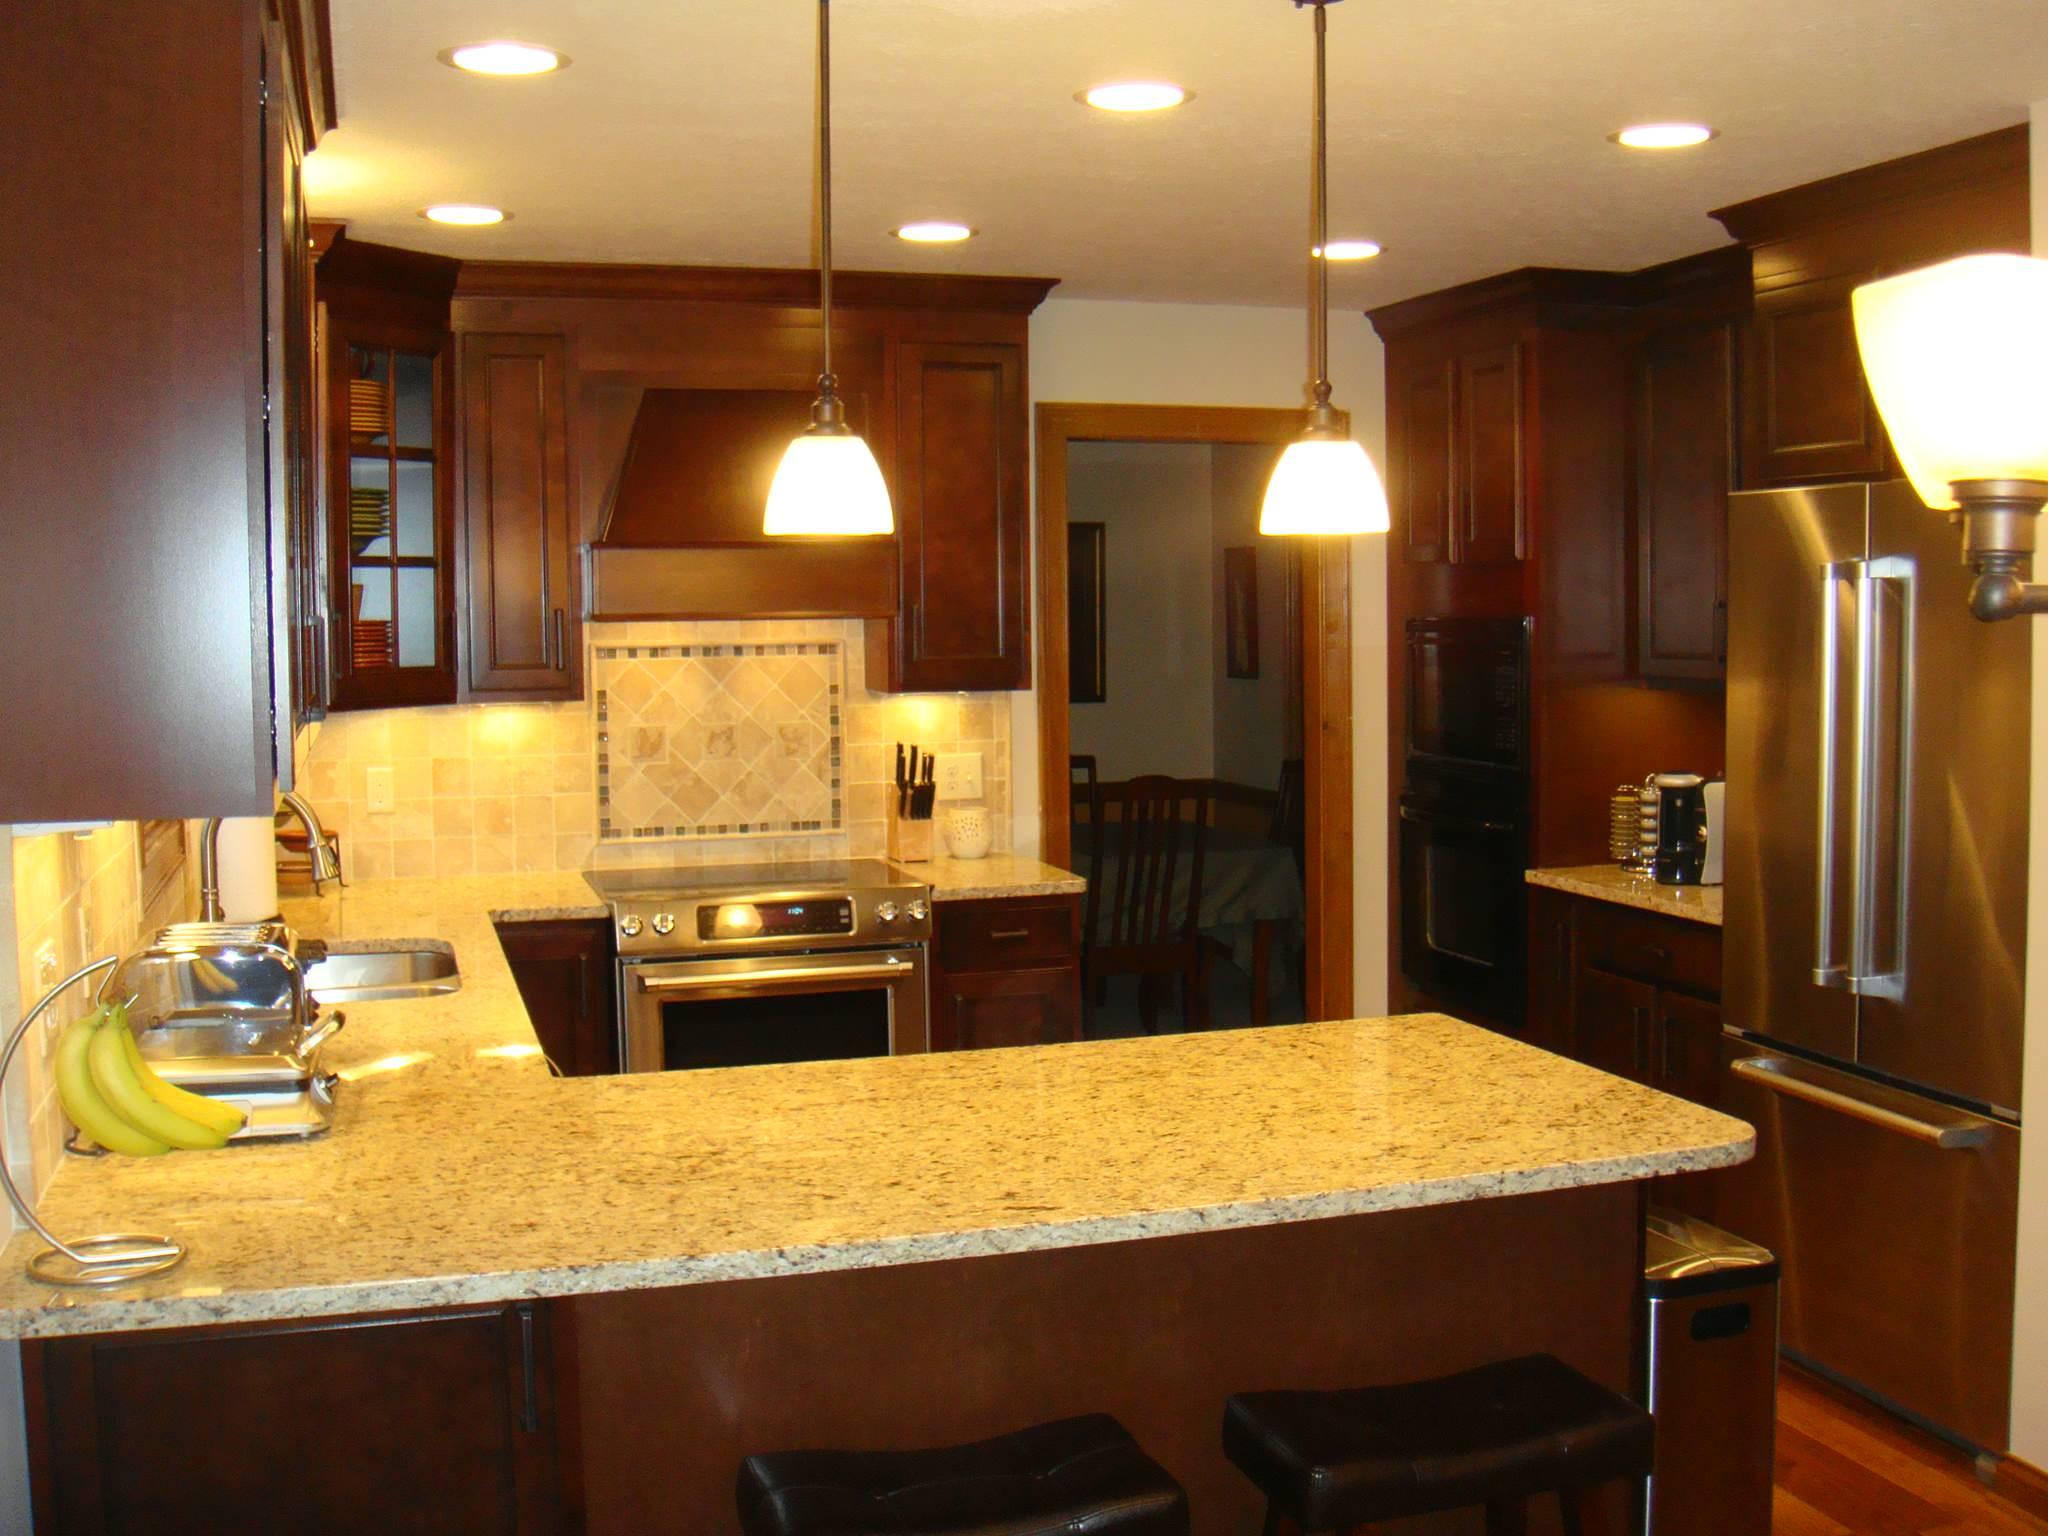 Westerville Full kitchen remodel